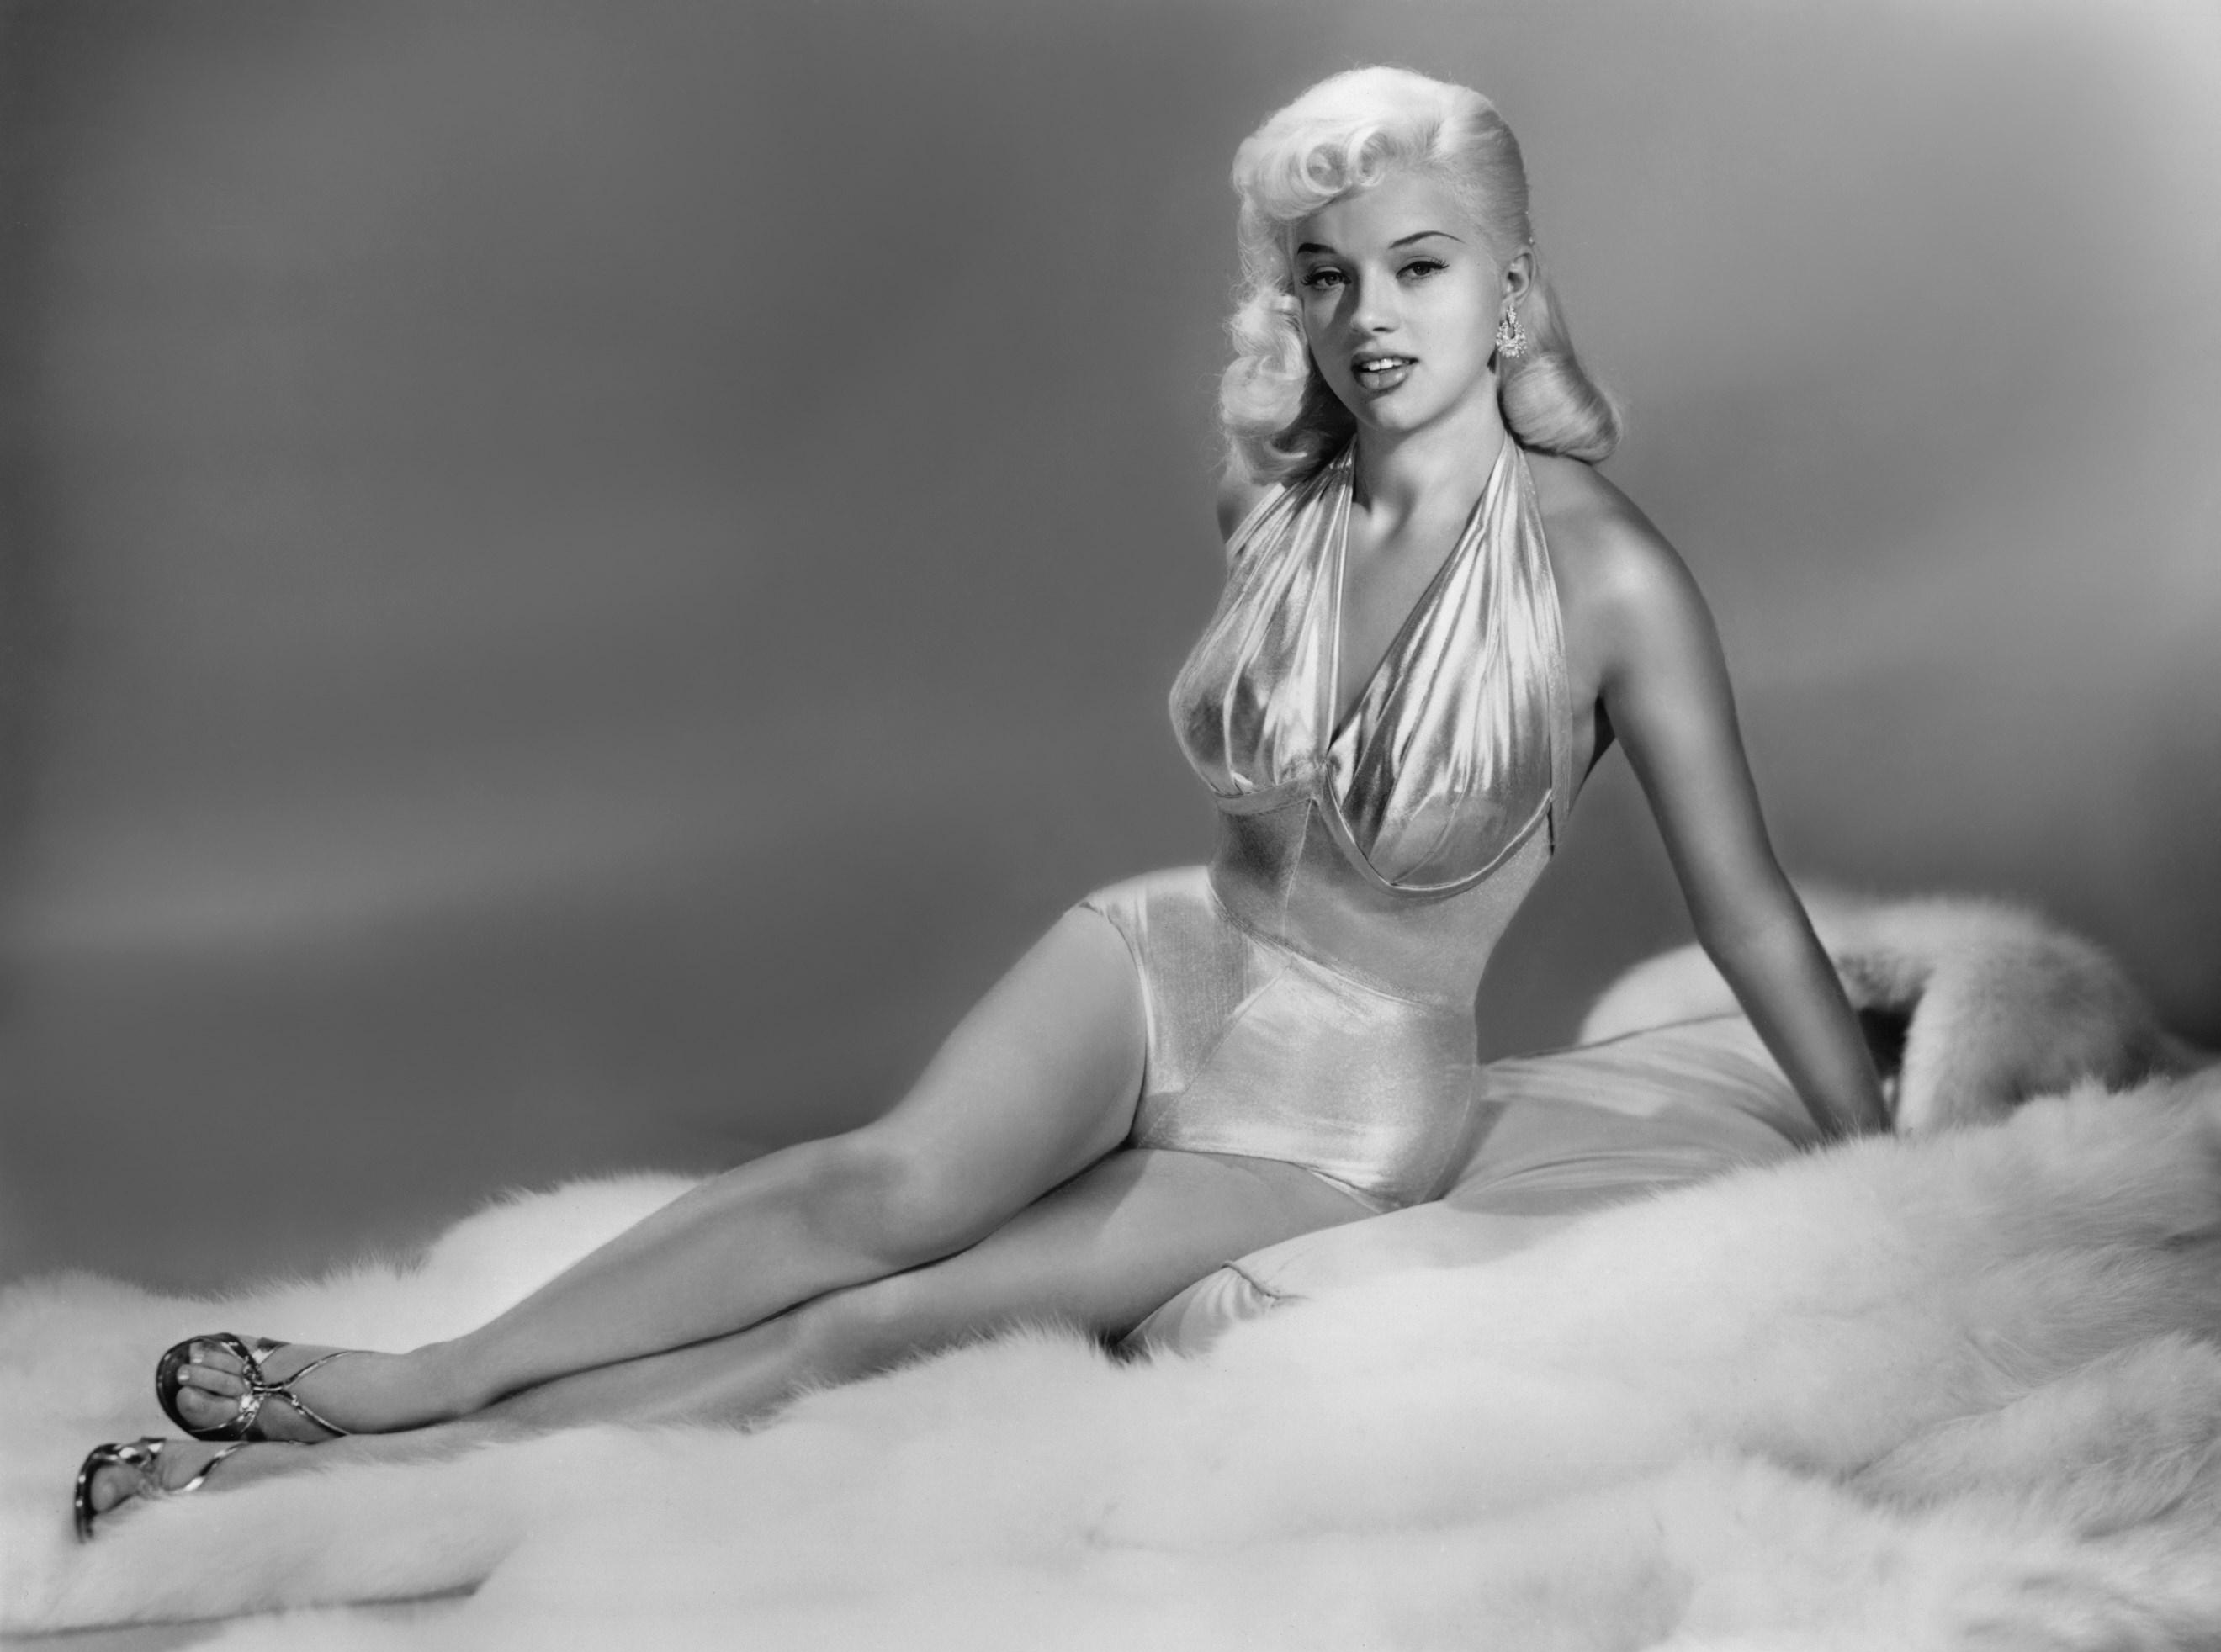 Diana Dors Featured legend of Red Hots Burlesque.  sc 1 st  Red Hots Burlesque & LEGEND: Diana Dors | Red Hots Burlesque